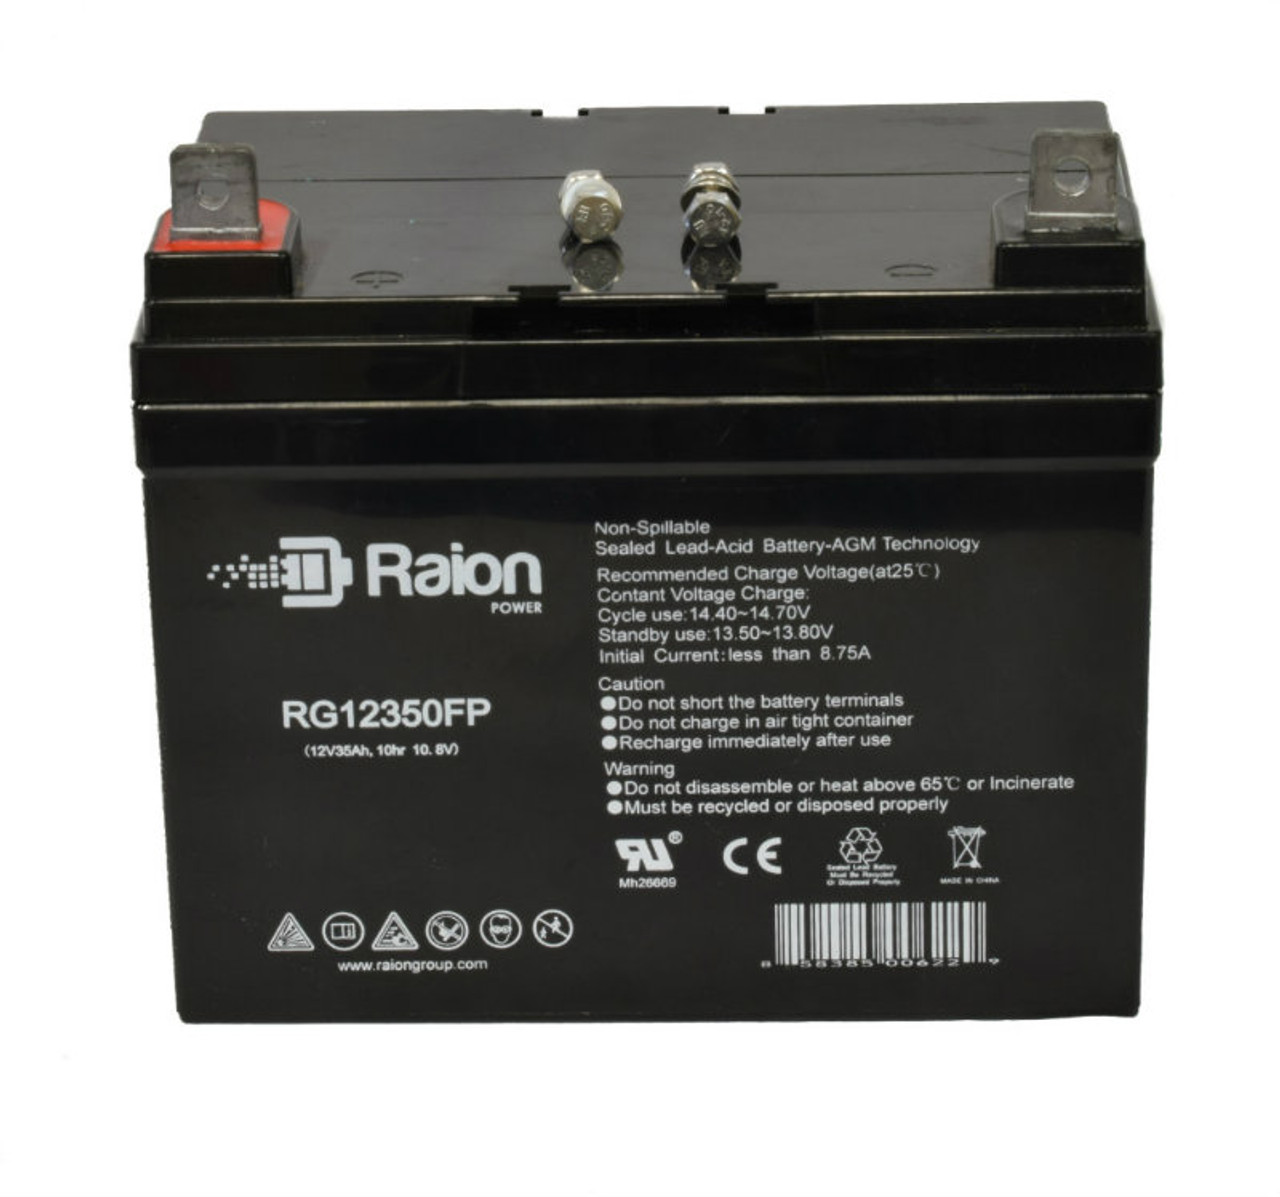 RG12350FP Sealed Lead Acid Battery Pack For Damaco Electro-Lite Mobility Scooter